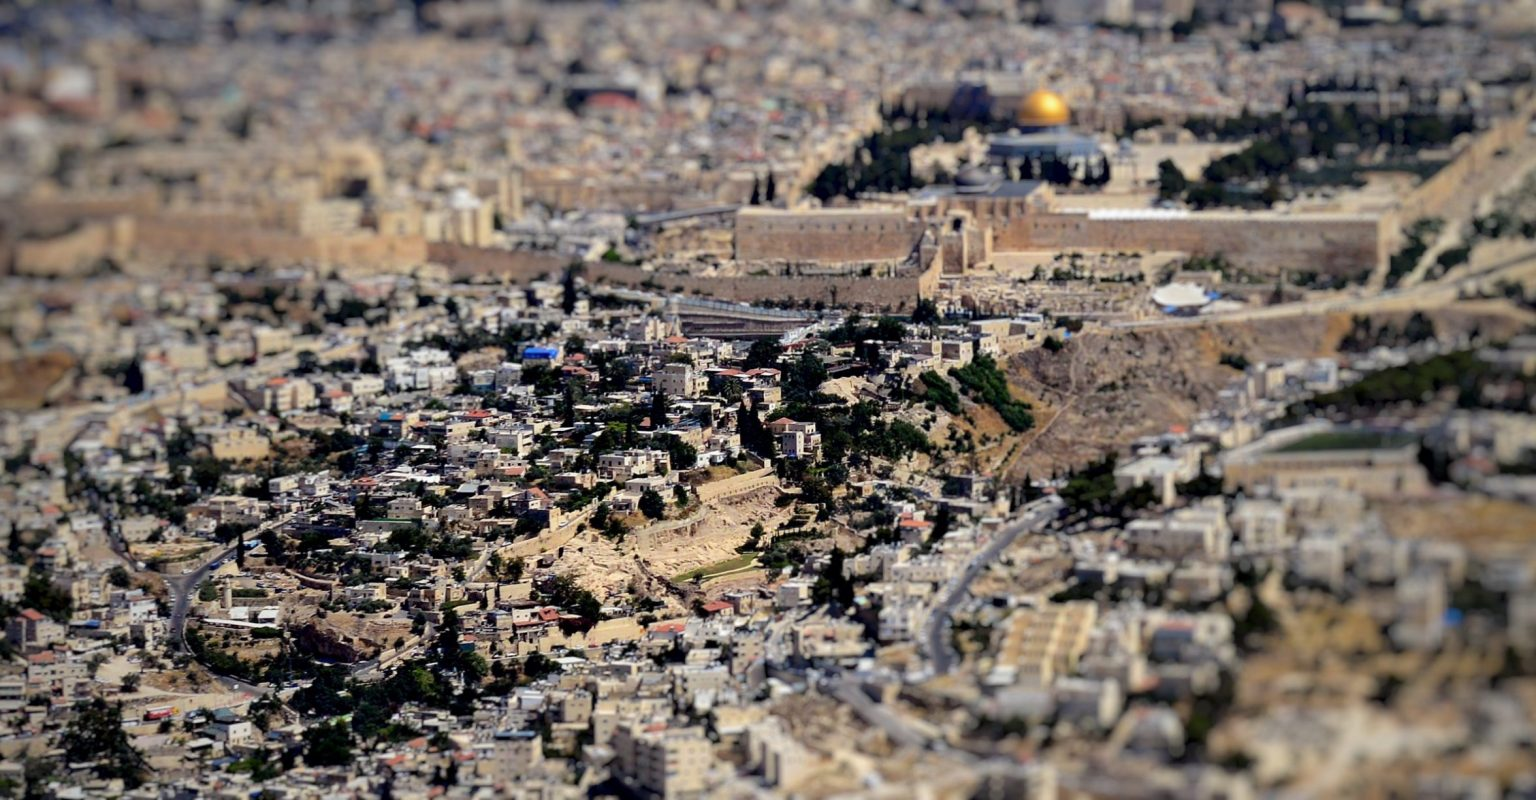 City_of_David,_Wadi_Hilweh_–_Palestinian_village,_Israeli_settlement,_Archaeological_site_–_from_the_air